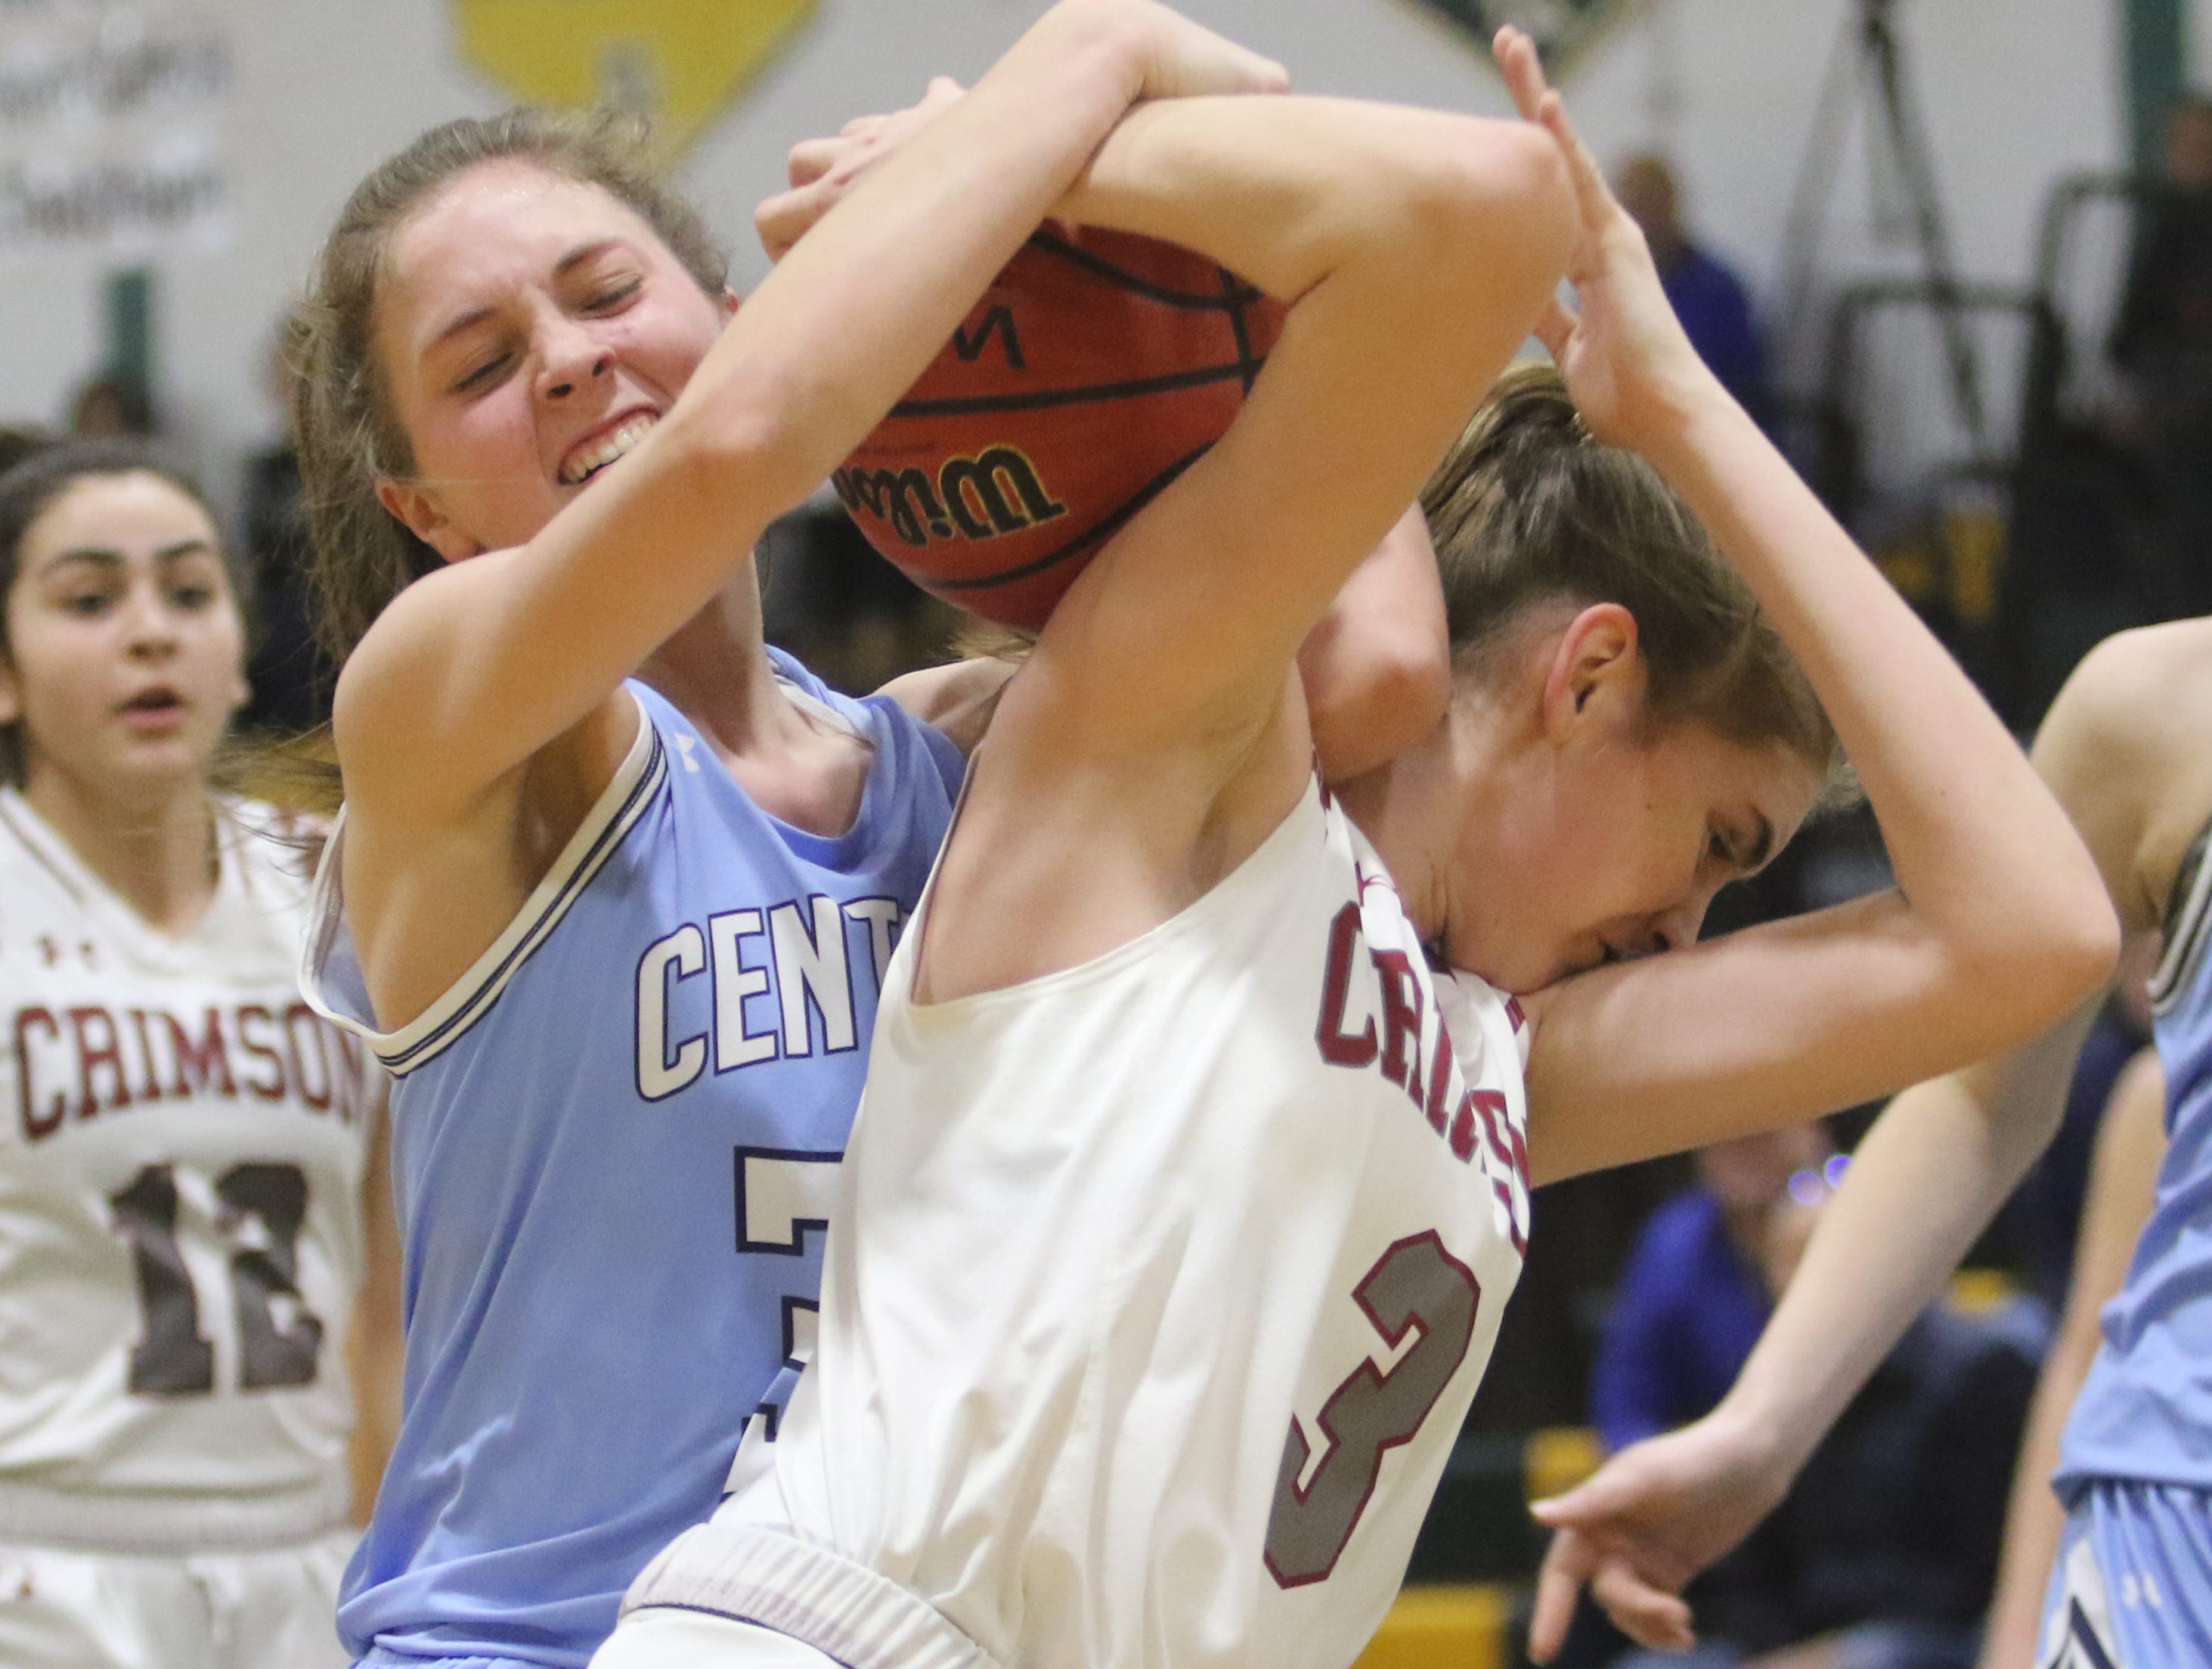 West Morris junior Elizabeth Mancini  fights for a rebound with 6-foot Morristown-Beard sophomore Erin Martin in the first half of a Morris County Tournament girls basketball quarterfinal.